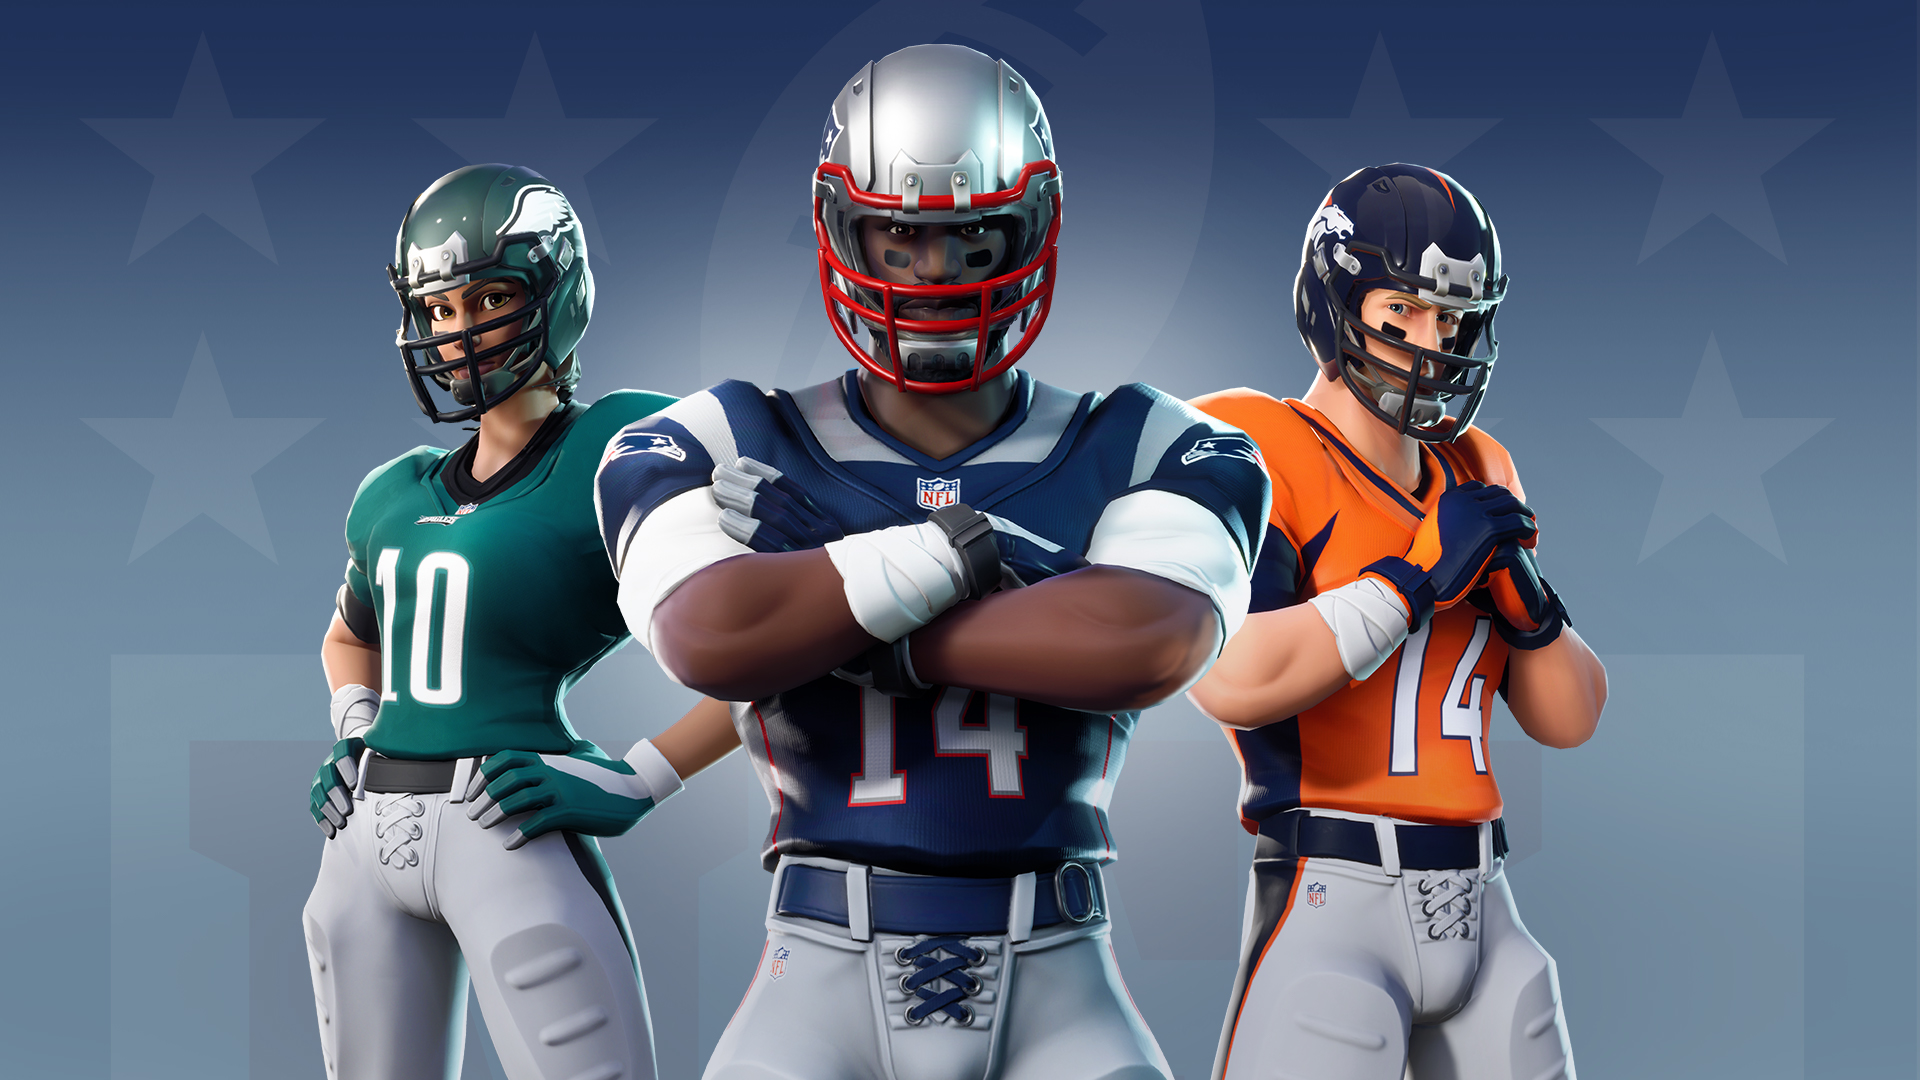 Official Licensed NFL Skins Coming To Fortnite